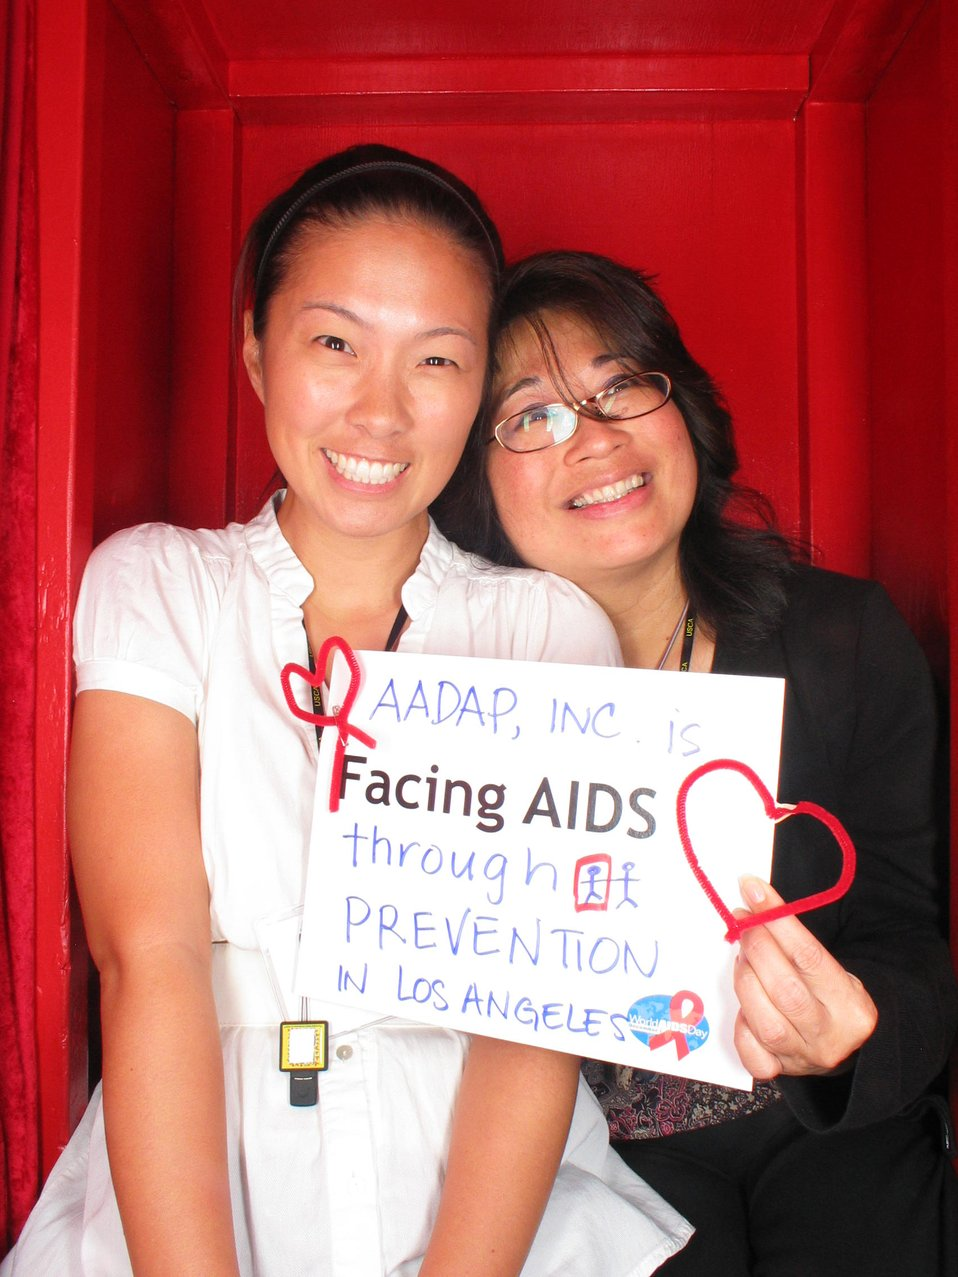 AADAP, Inc is Facing AIDS through prevention in Los Angeles